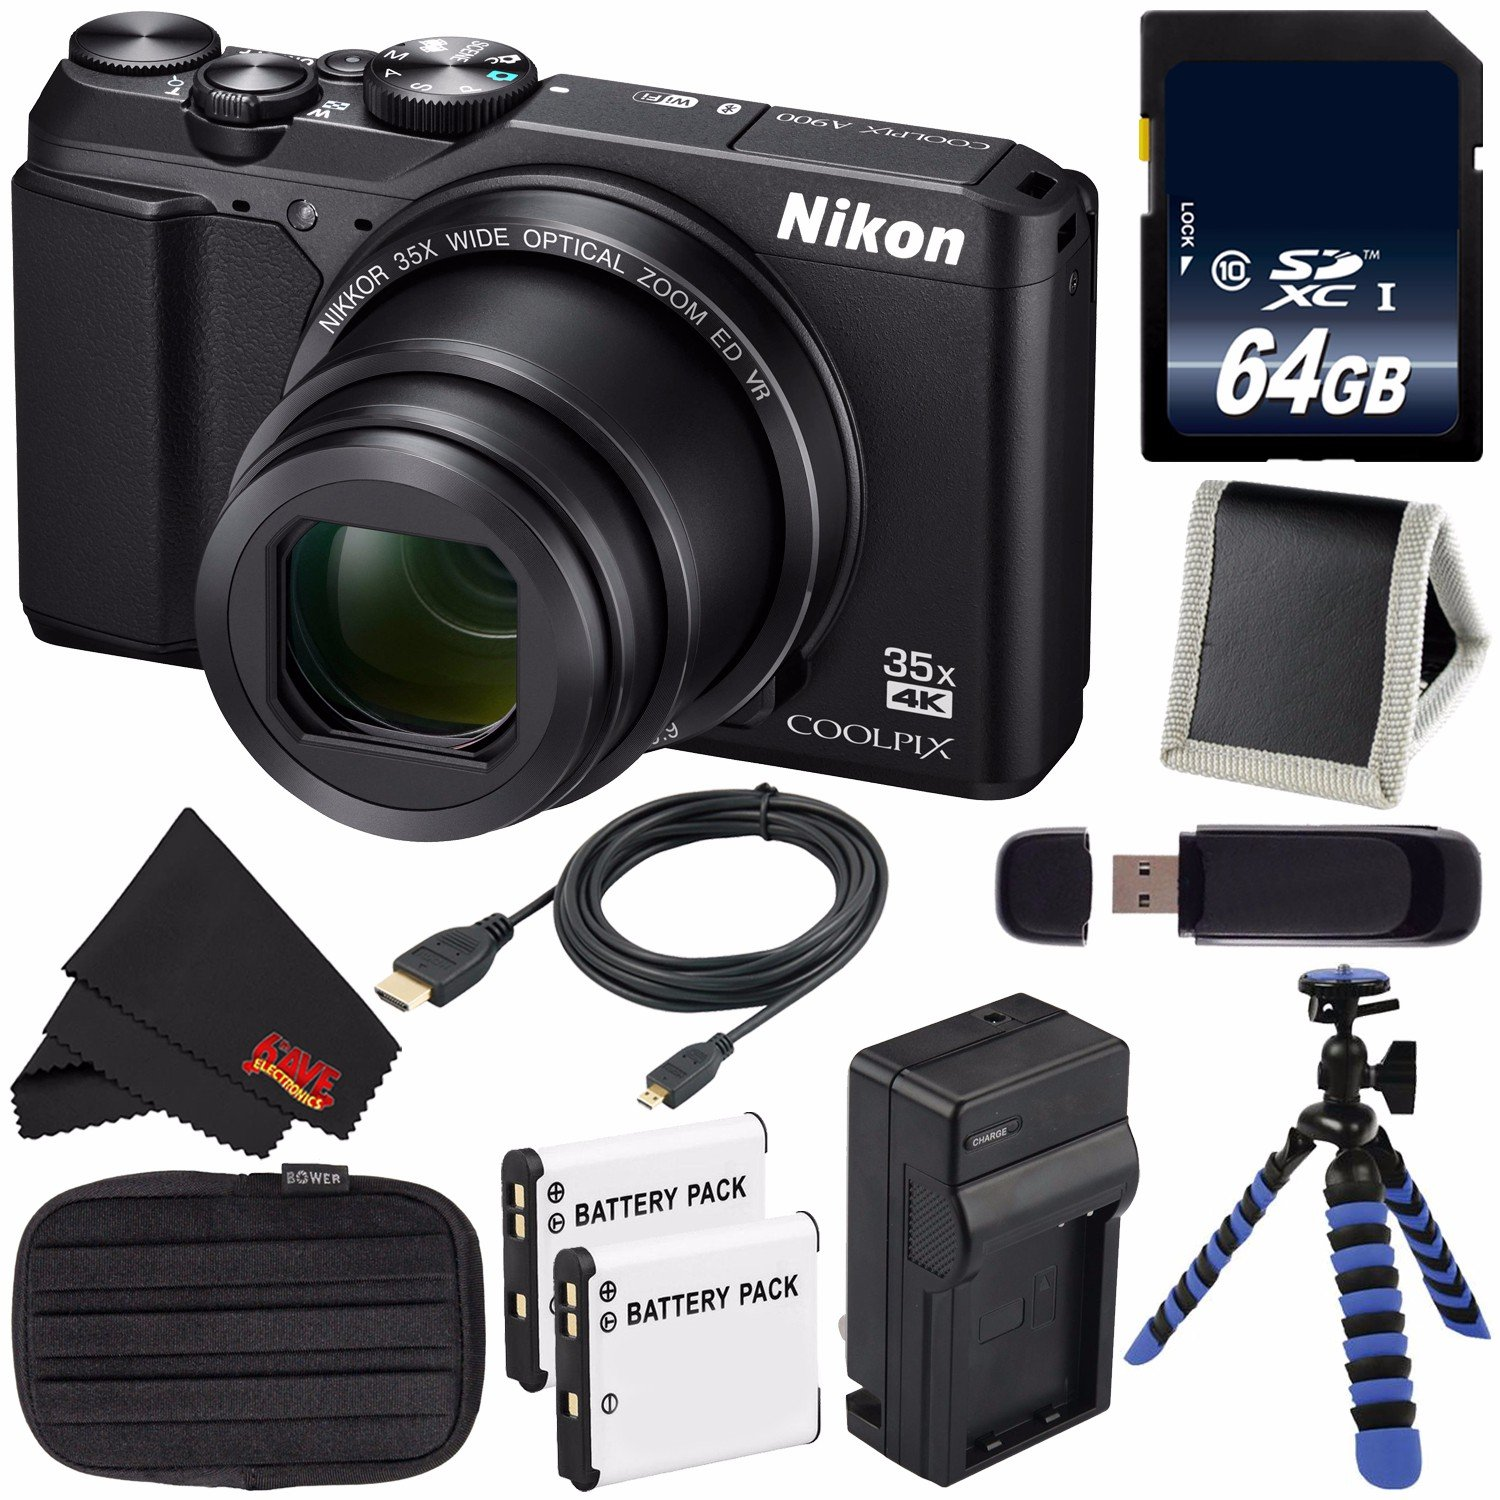 Nikon COOLPIX A900 Digital Camera (Black) 26501 International Model + EN-EL12 Replacement Lithium Ion Battery + External Rapid Charger + 64GB SDXC Class 10 ...